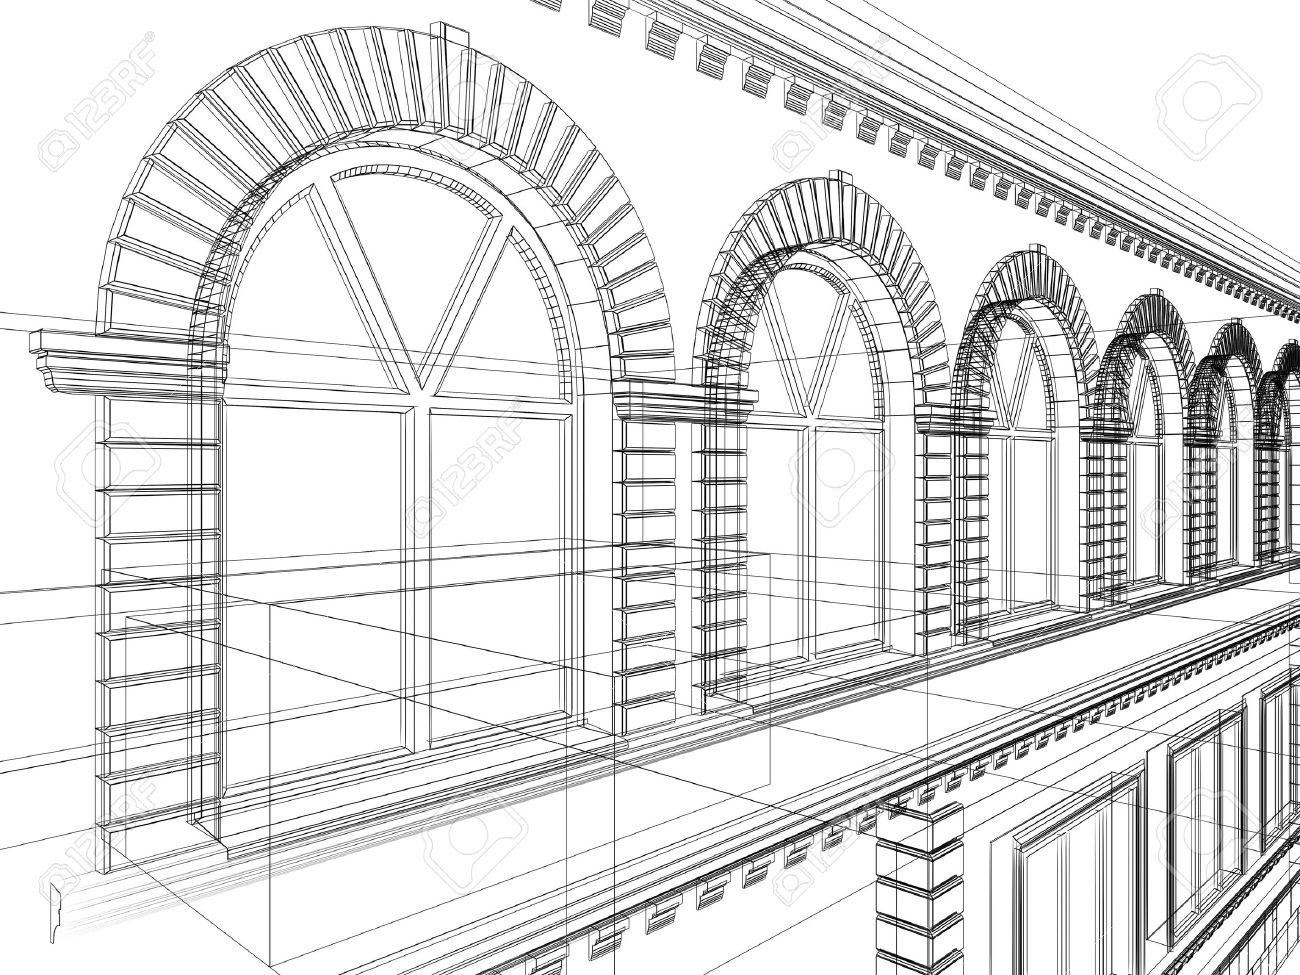 sketch of house architectural 3d illustration stock photo